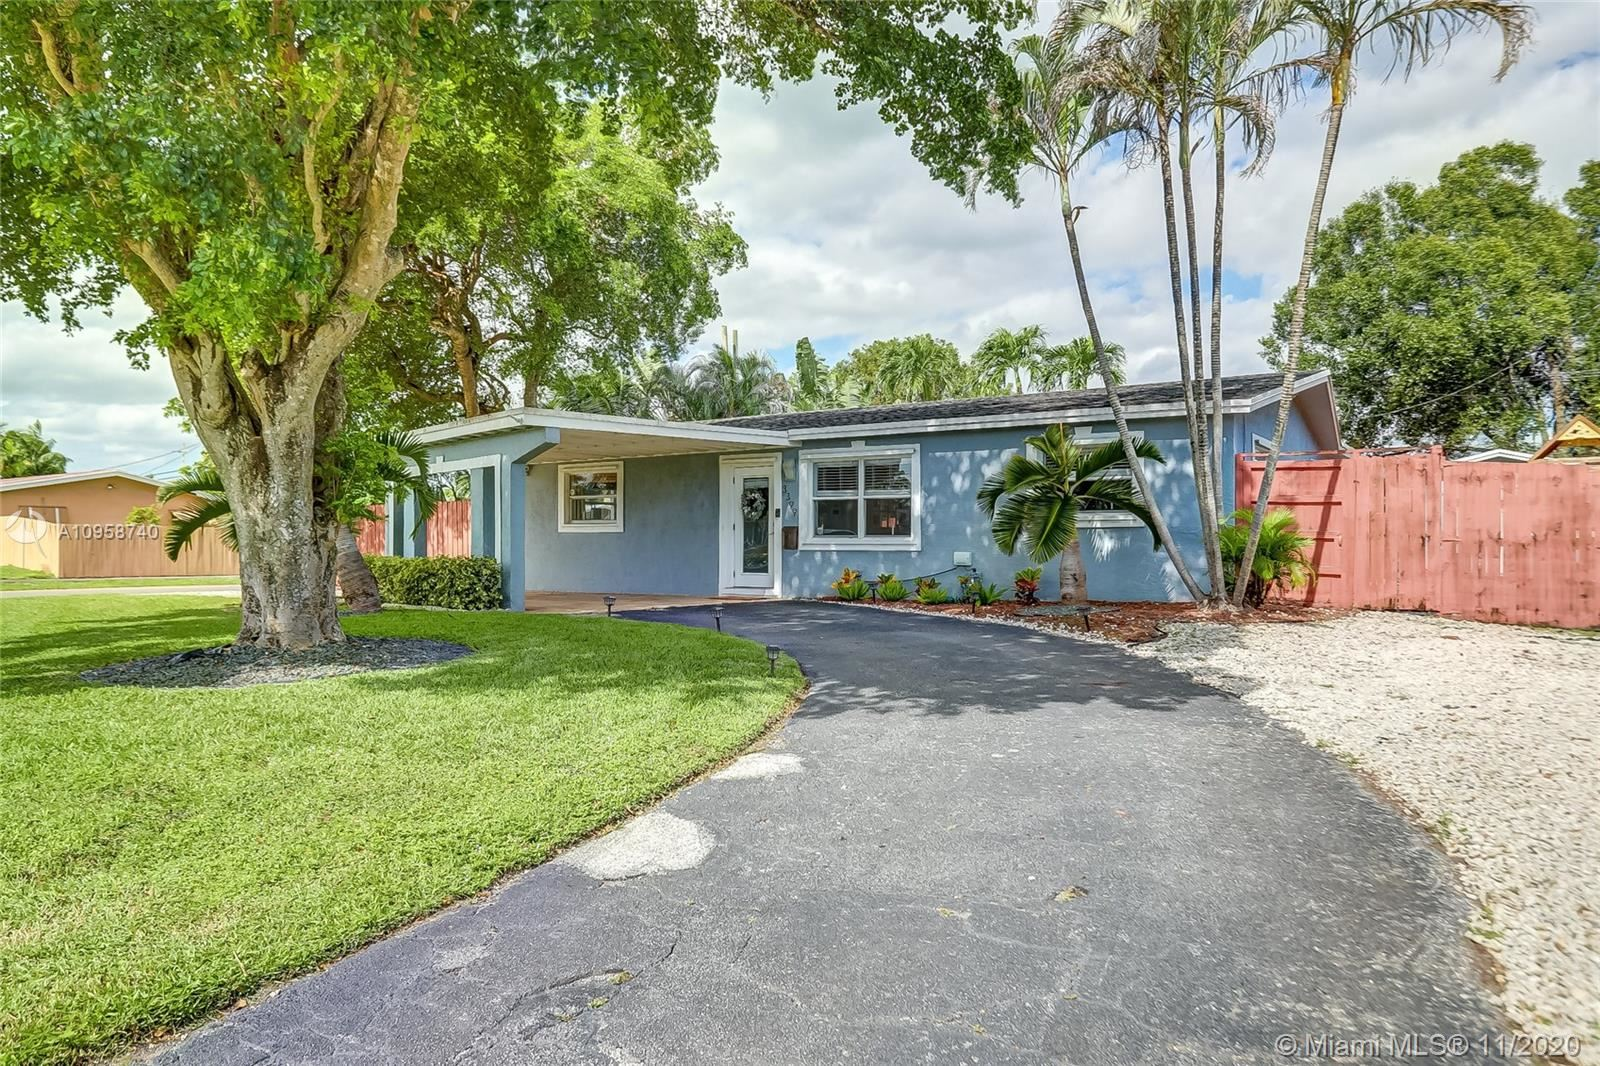 3399 SW 17th St, Fort Lauderdale, FL 33312 - #: A10958740